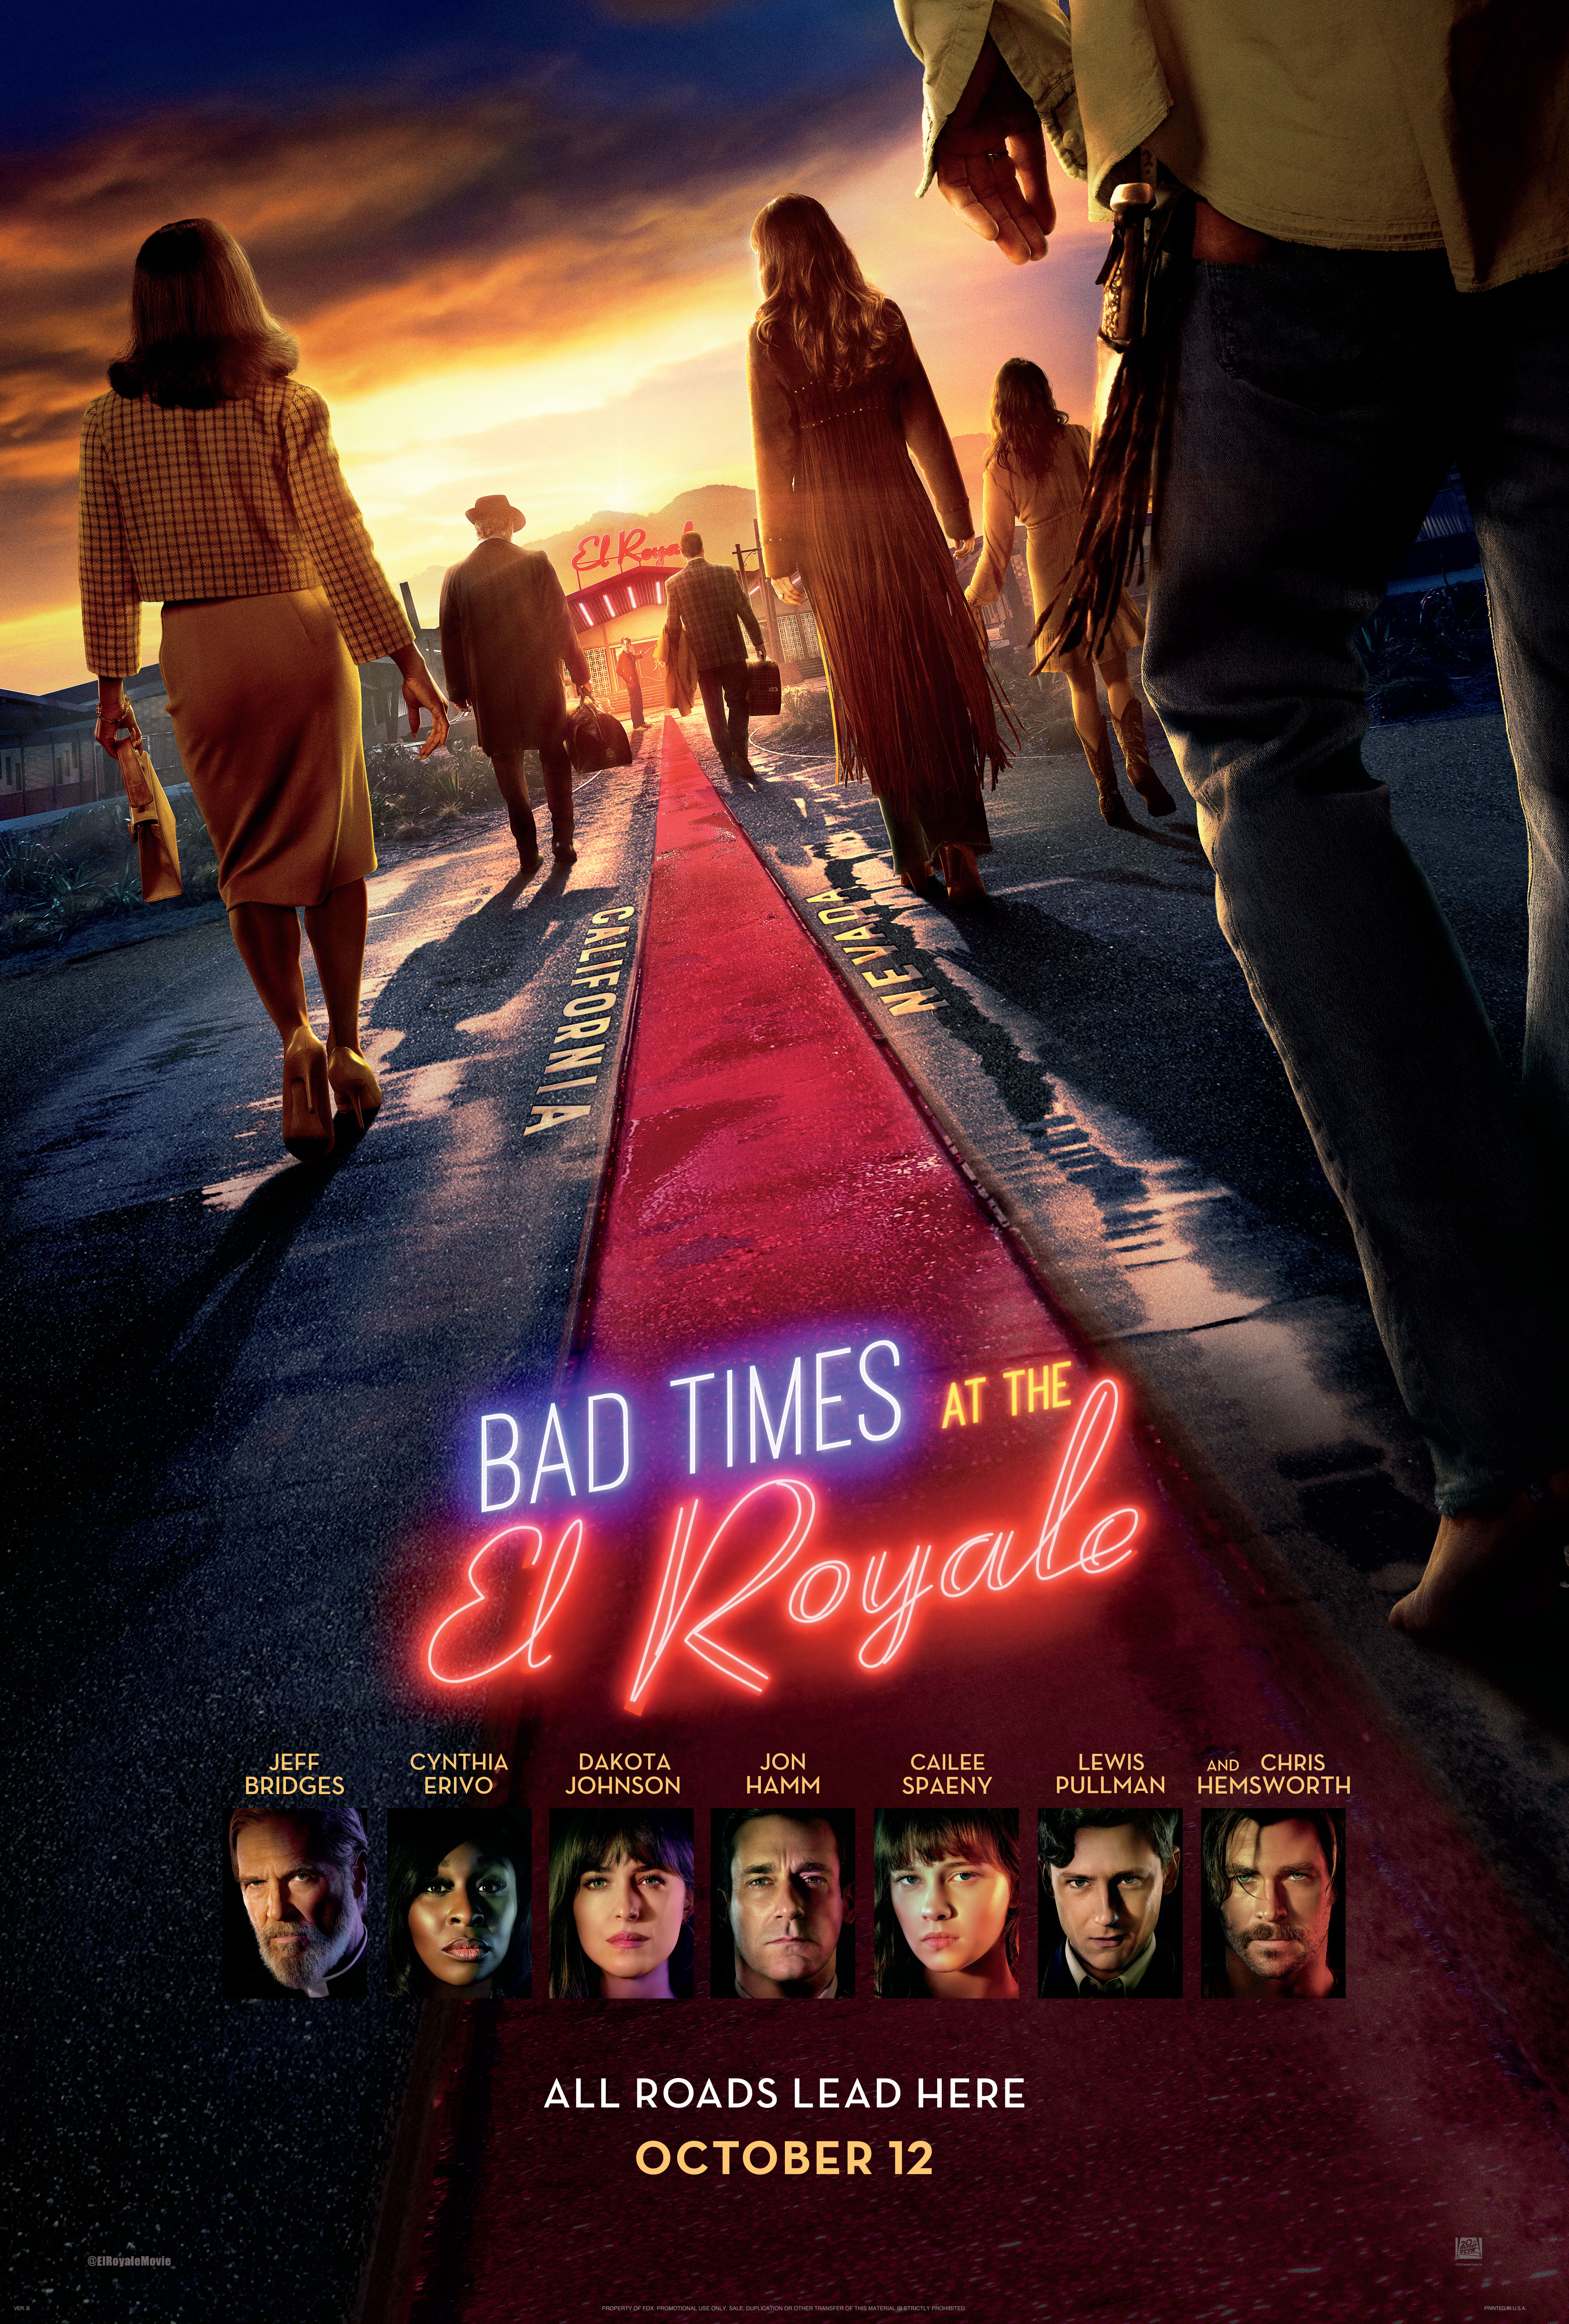 """Bad Times at the El Royale"""" was a bad time – The Oracle"""